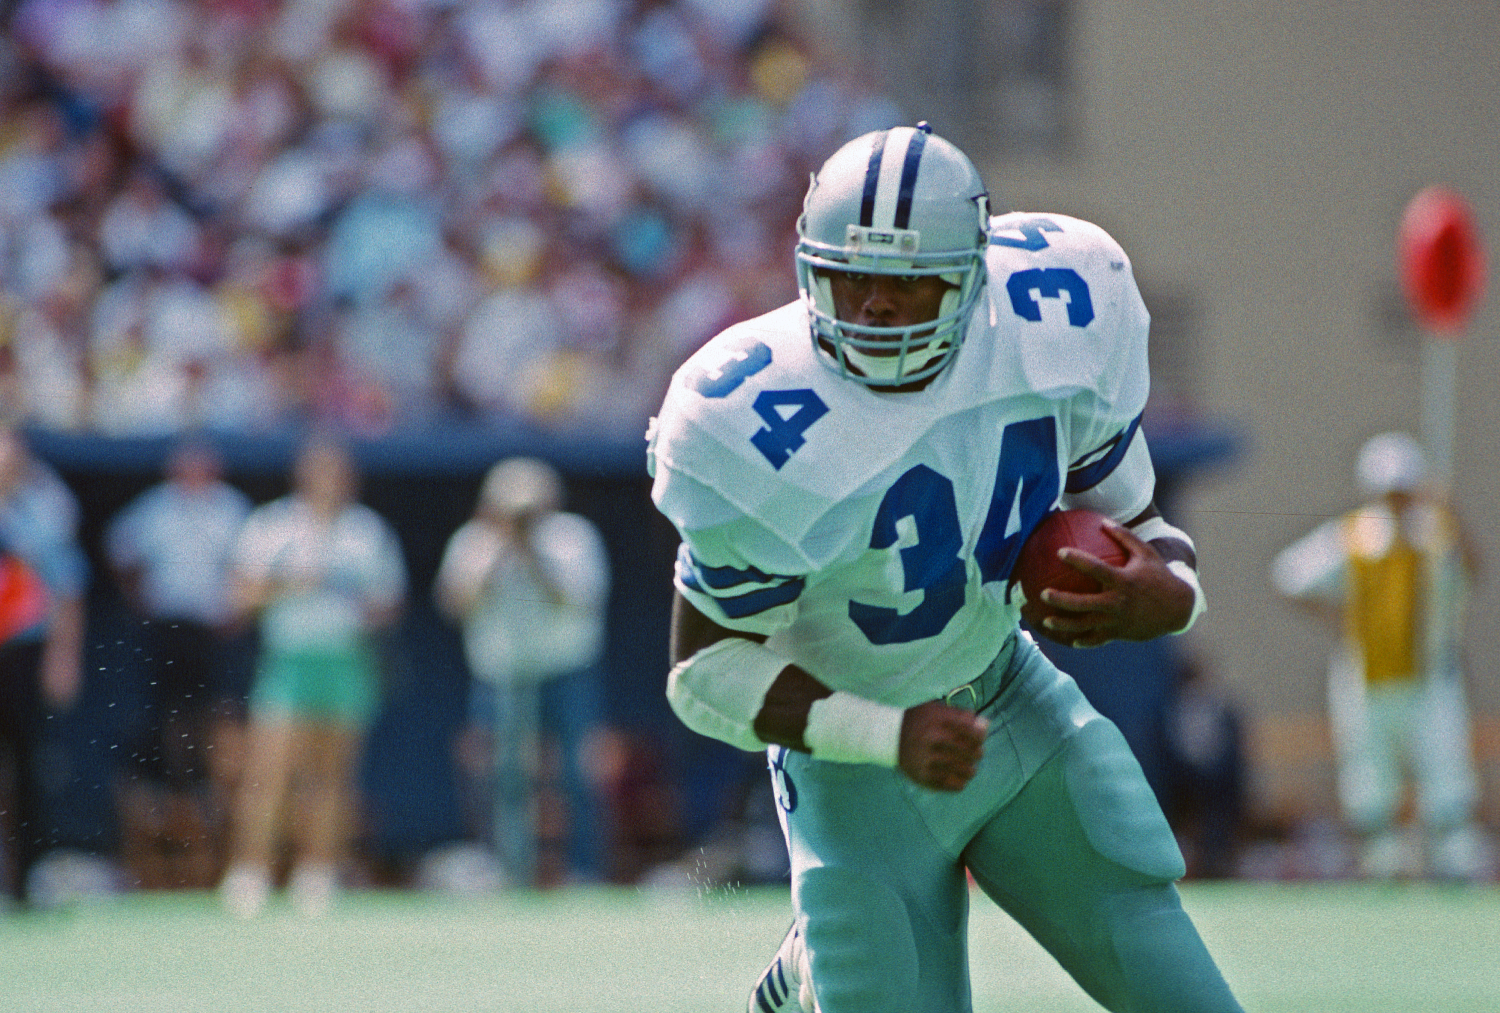 Herschel Walker running with the football